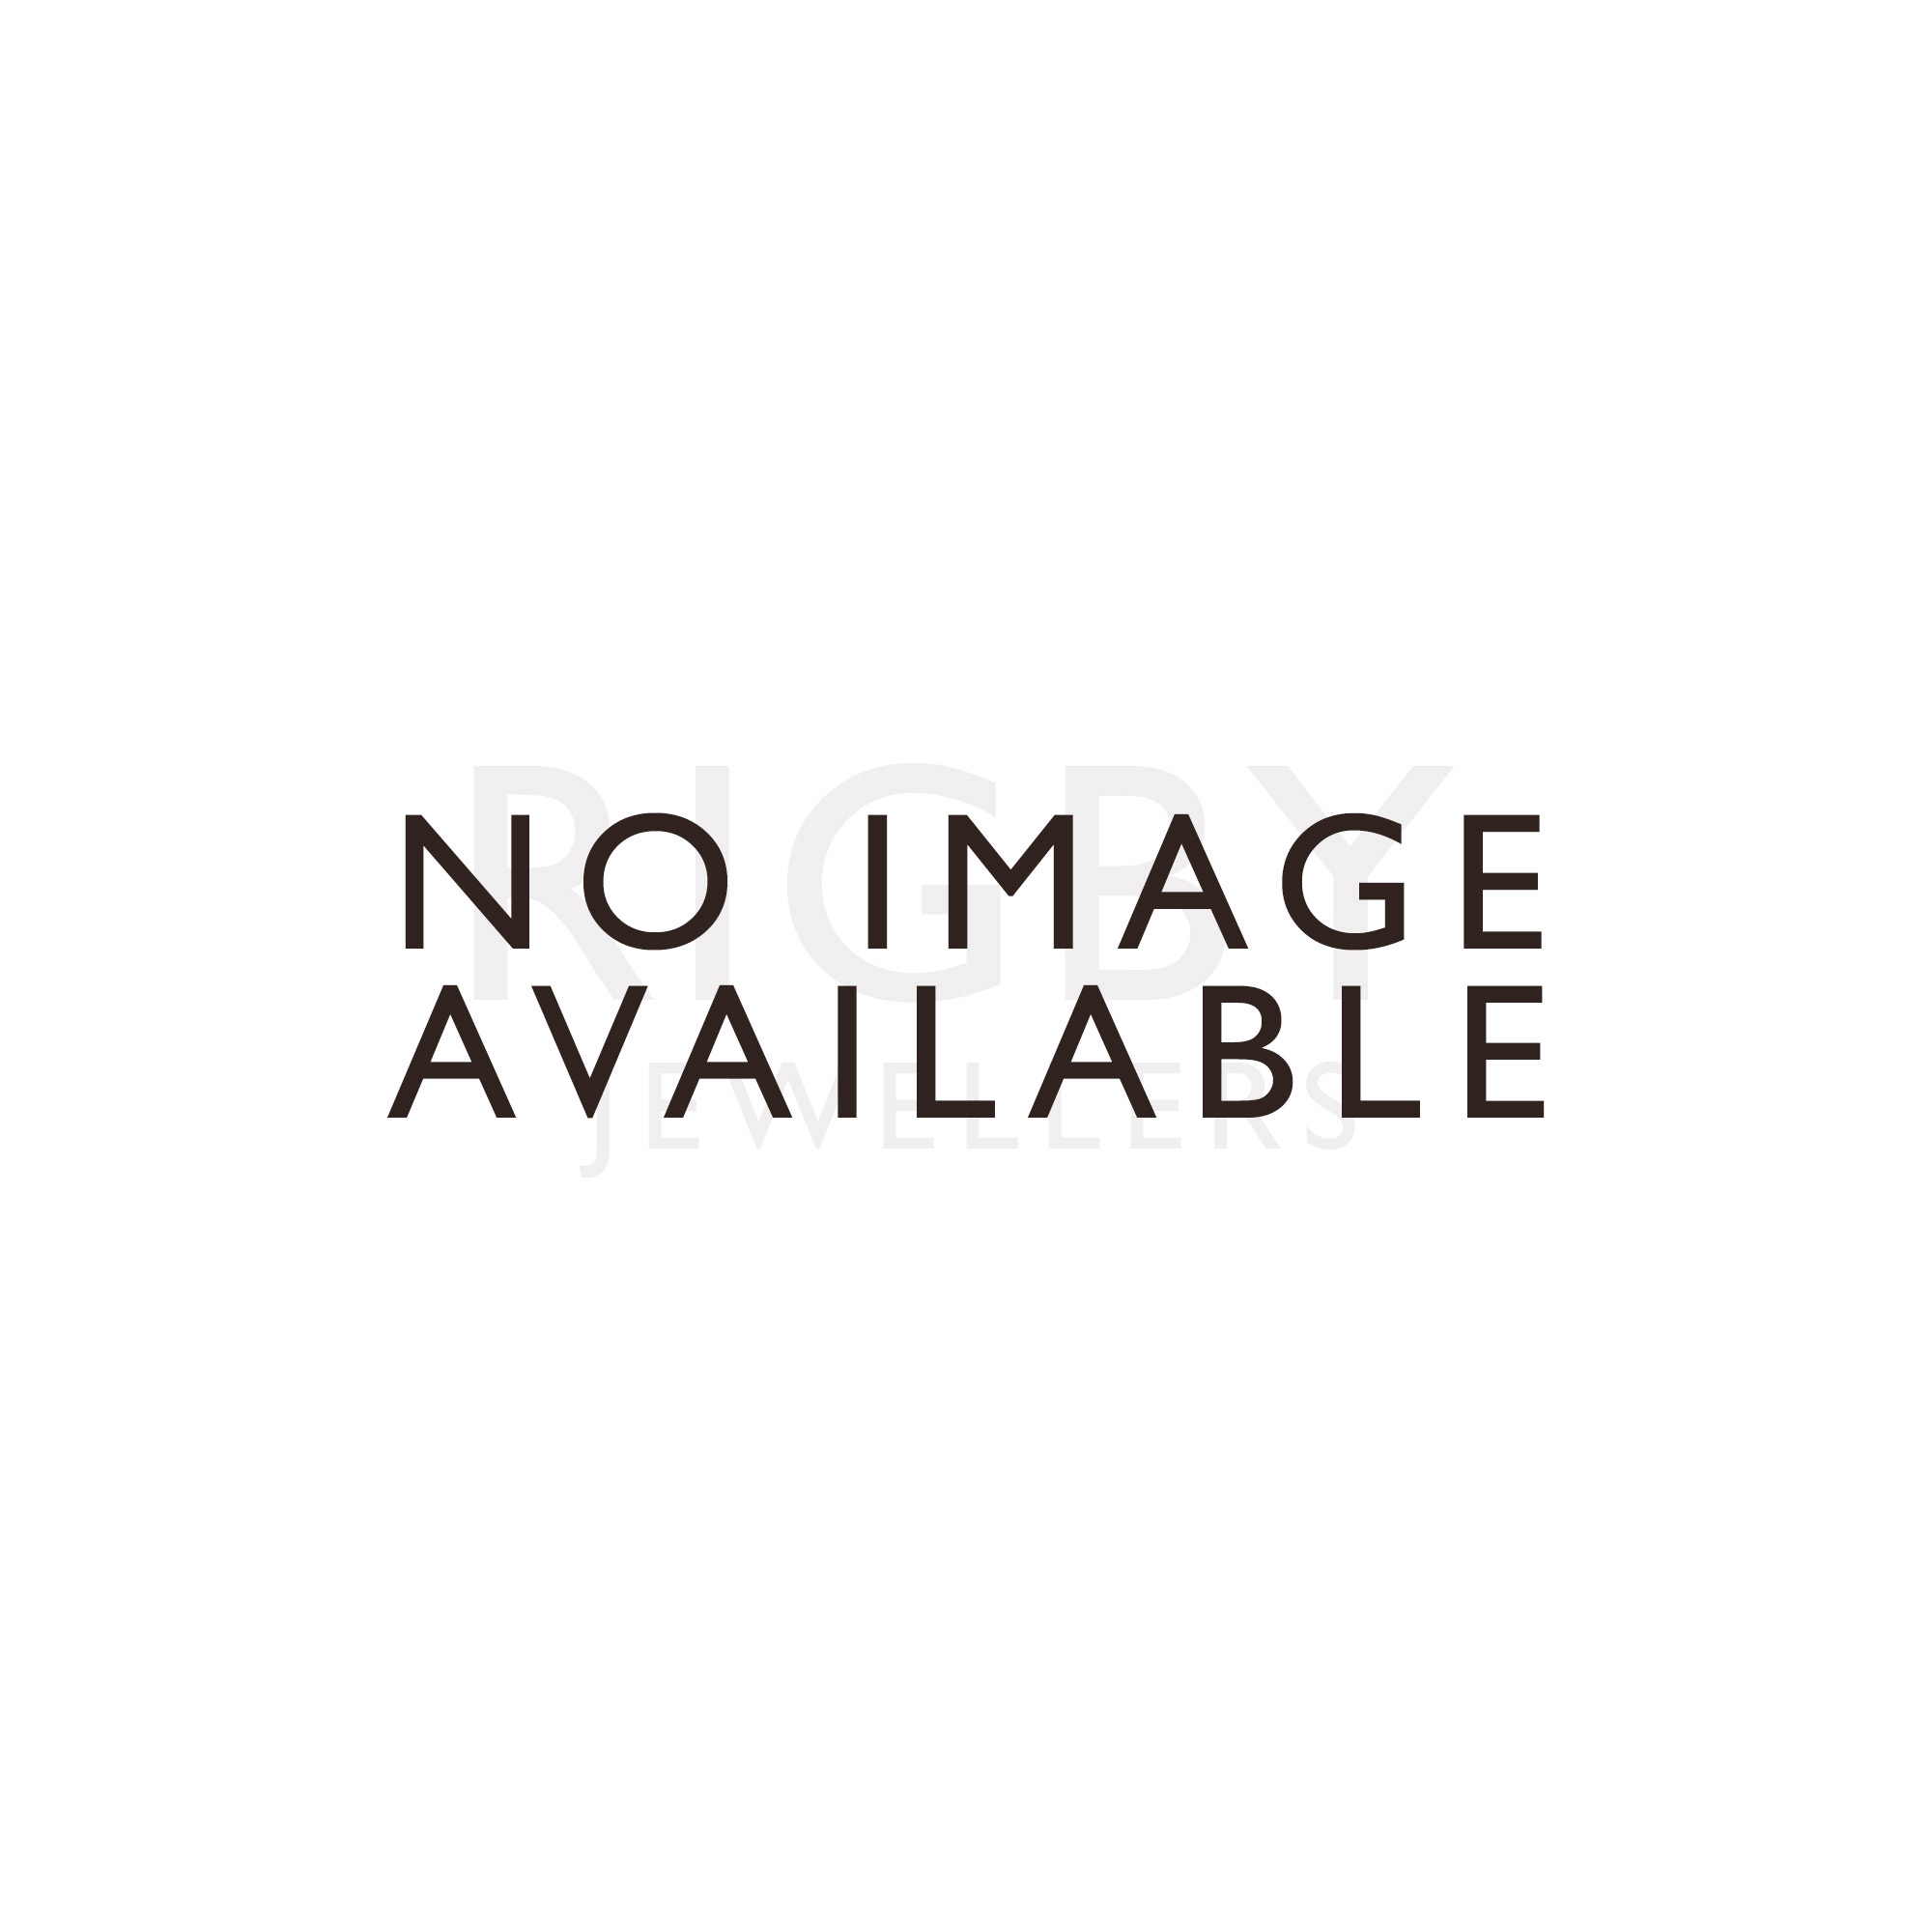 Wooden Westminster Chime Battery Wall Clock With Pendulum